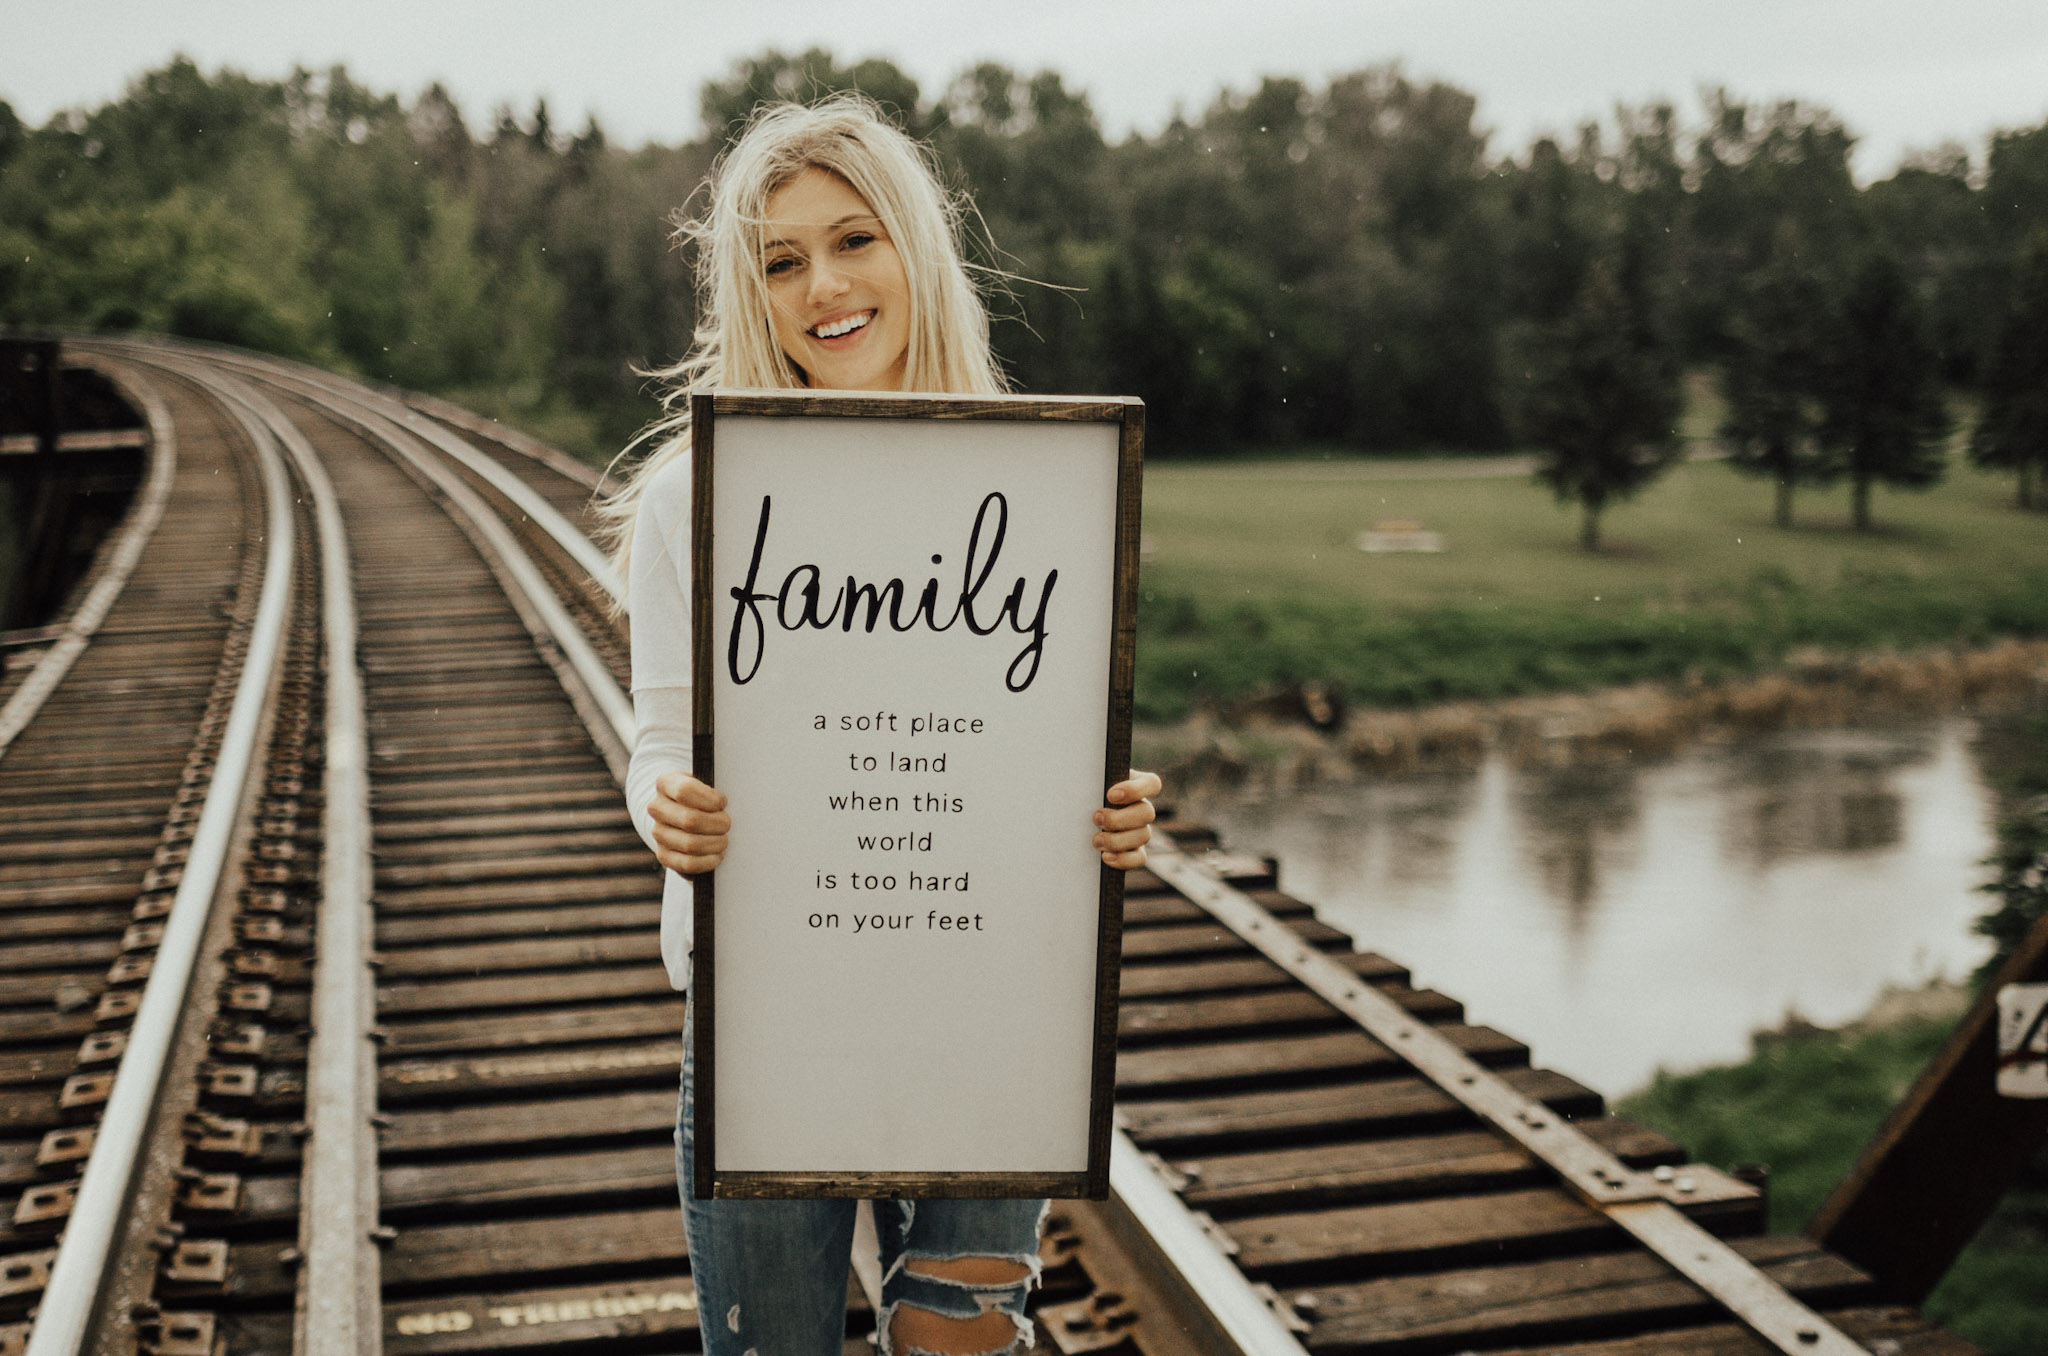 About - Writing has been a hobby of mine since I was a little girl. As I grew into young adulthood I discovered a new facet of writing, in the form of poetry. I wanted to combine my love for words and home decor, thus prompting me to start this handmade wooden sign business!